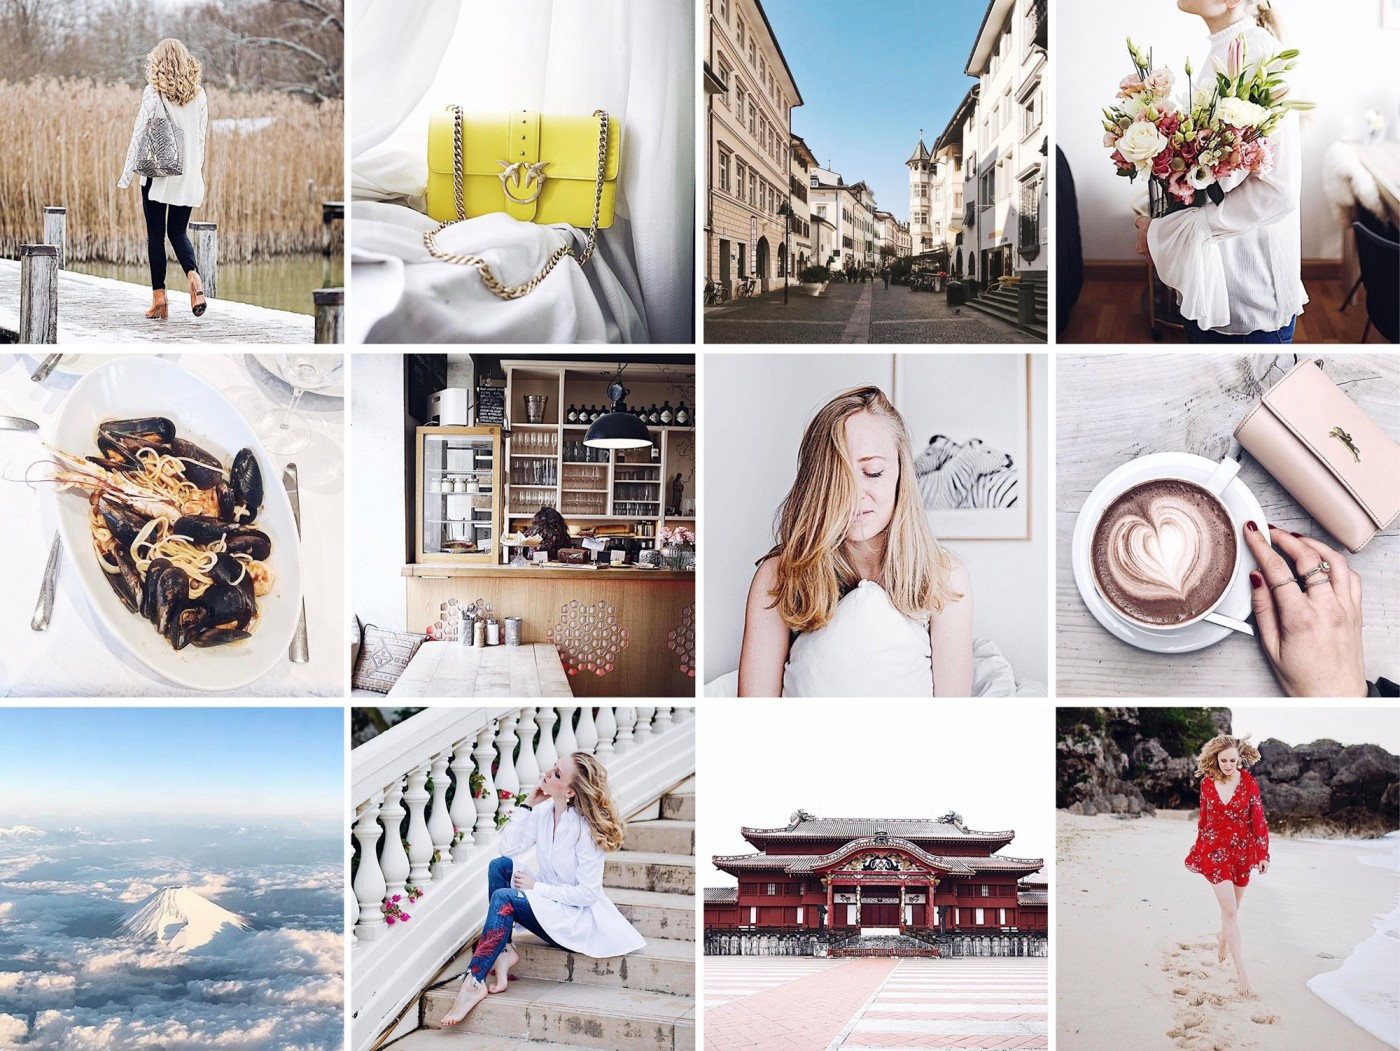 instagram review january thegoldenbun the golden bun monthly favorites january, Life on my phone | München Modeblog, German Fashion Blog, Fashionblogger, new trends